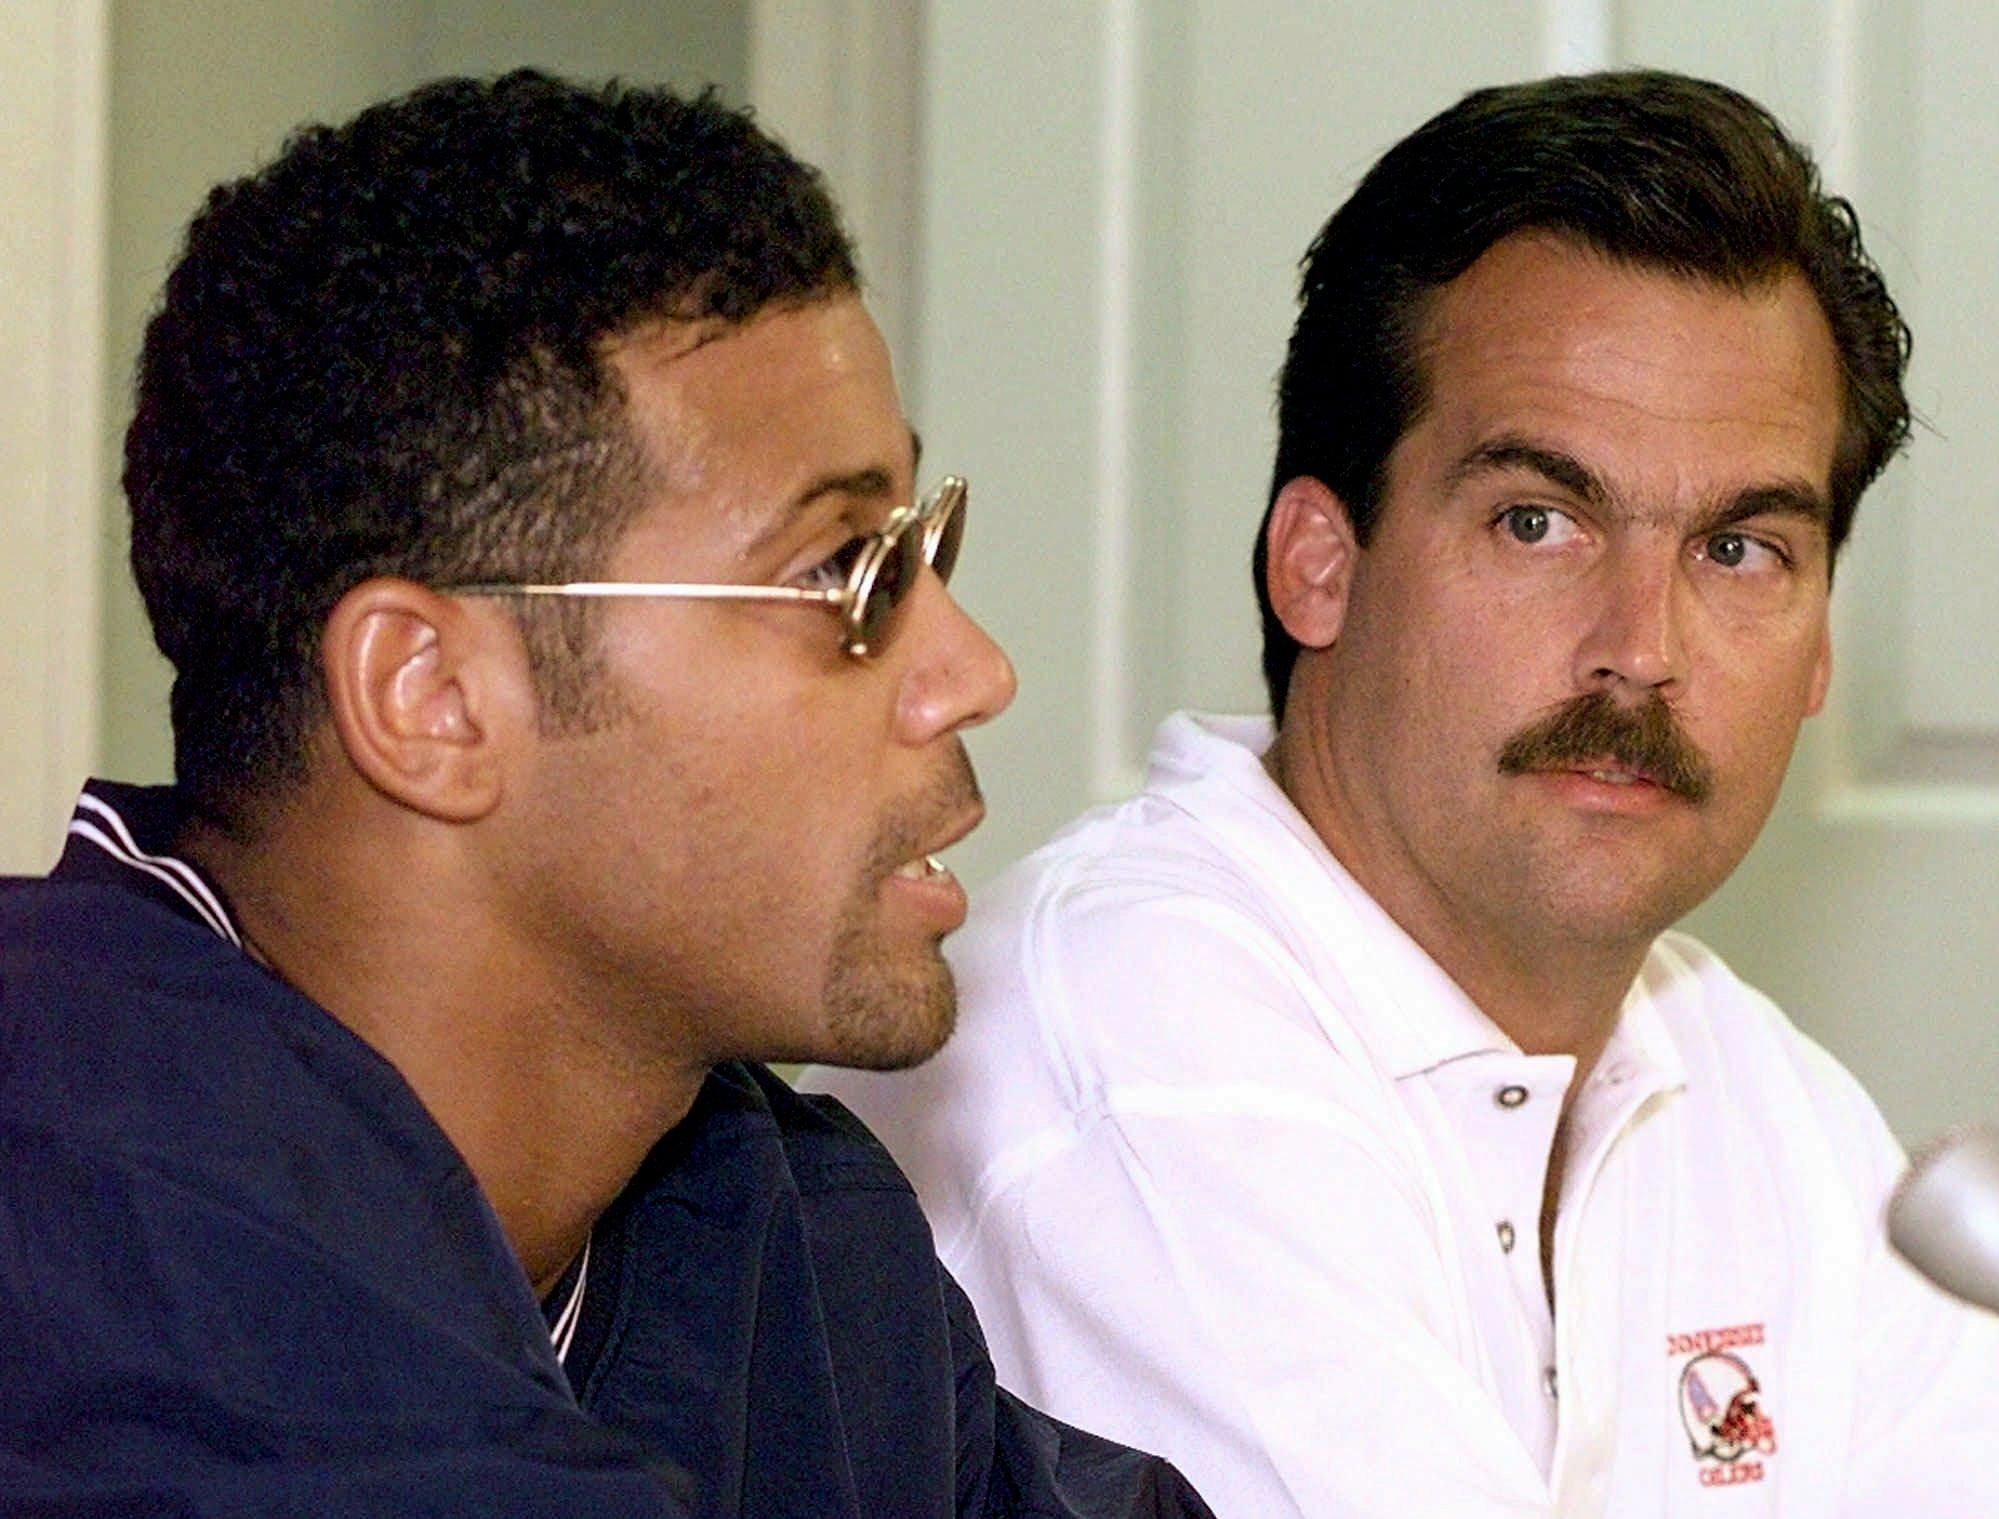 Tennessee Oilers coach Jeff Fisher, right, listens as Blaine Bishop answers questions after signing a six-year contract with the team Aug. 27, 1997 in Nashville. Bishop, a two-time Pro Bowler, held out of training camp and the first week of practice looking for a long-term deal.